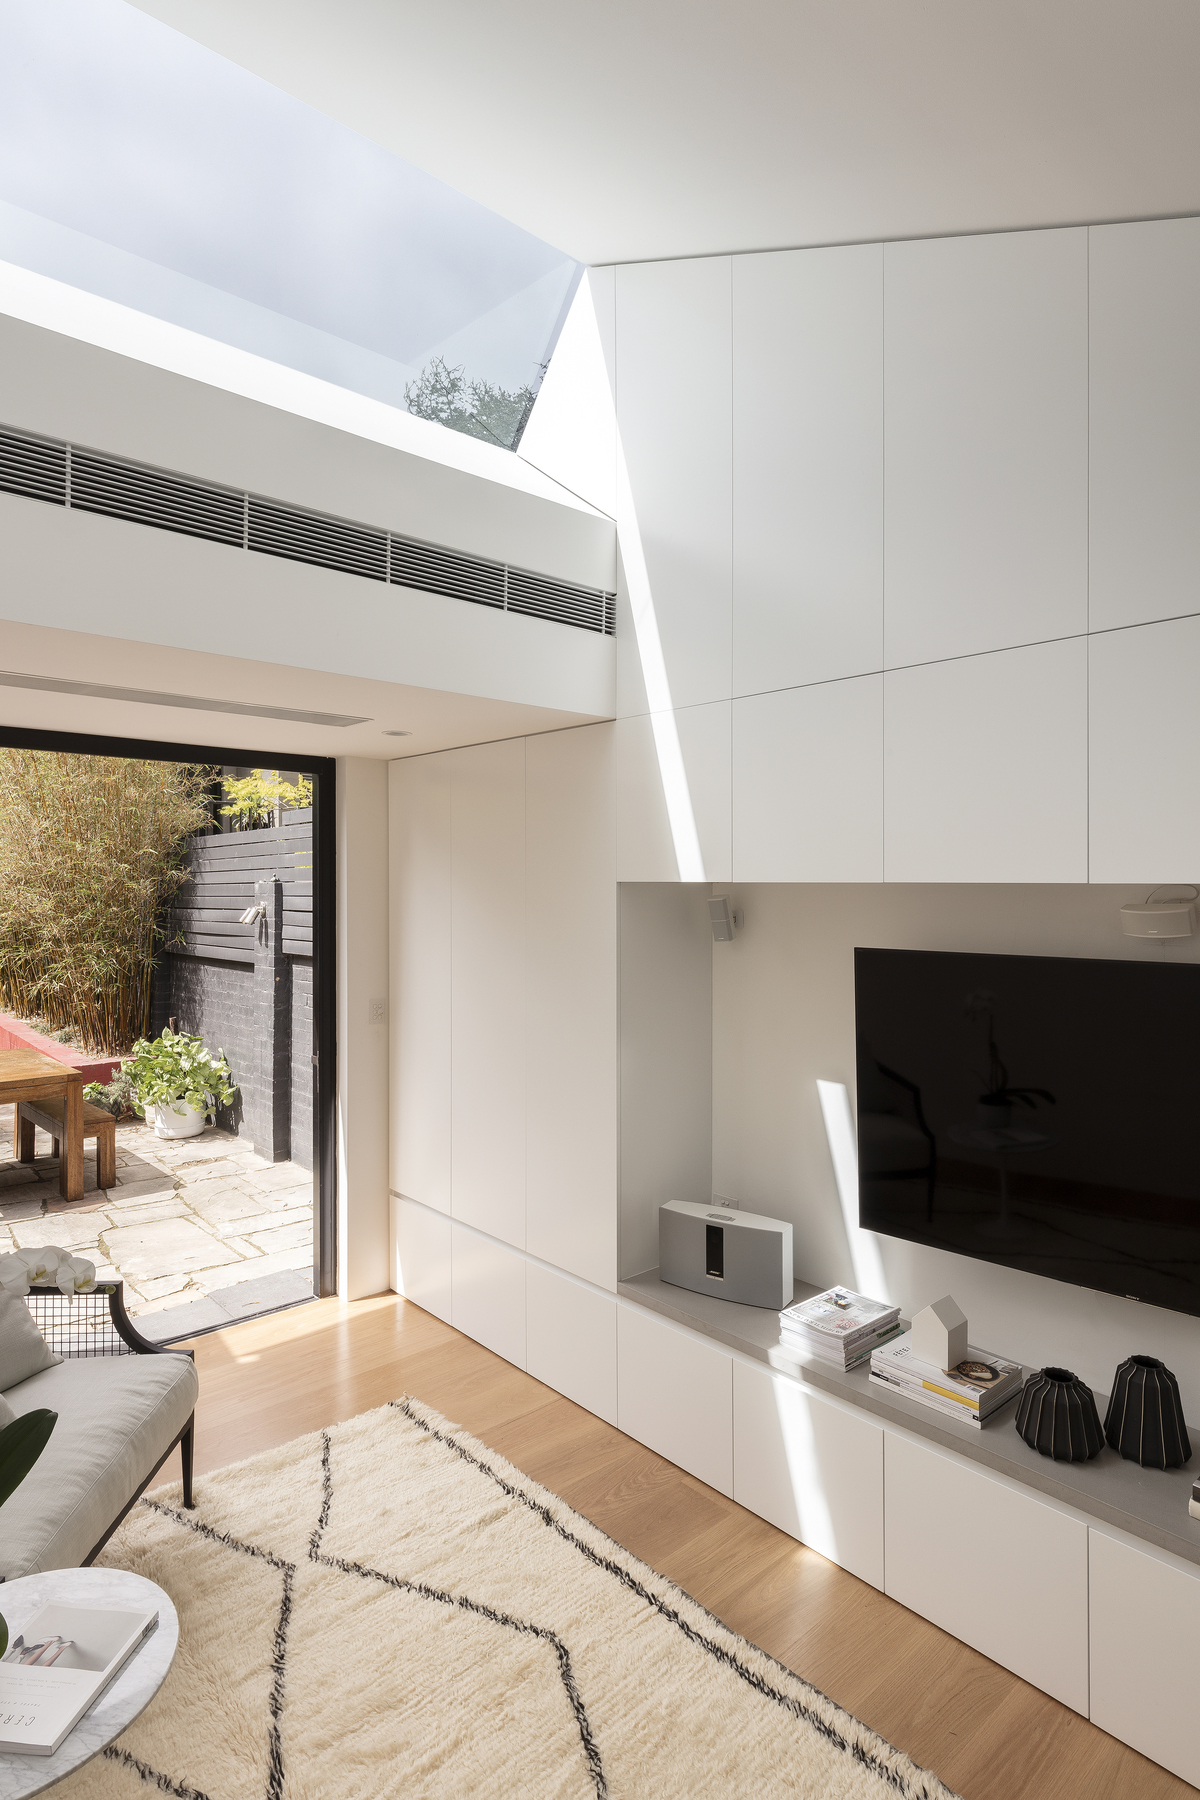 Subterranean Living Space Transformed by a Huge Skylight